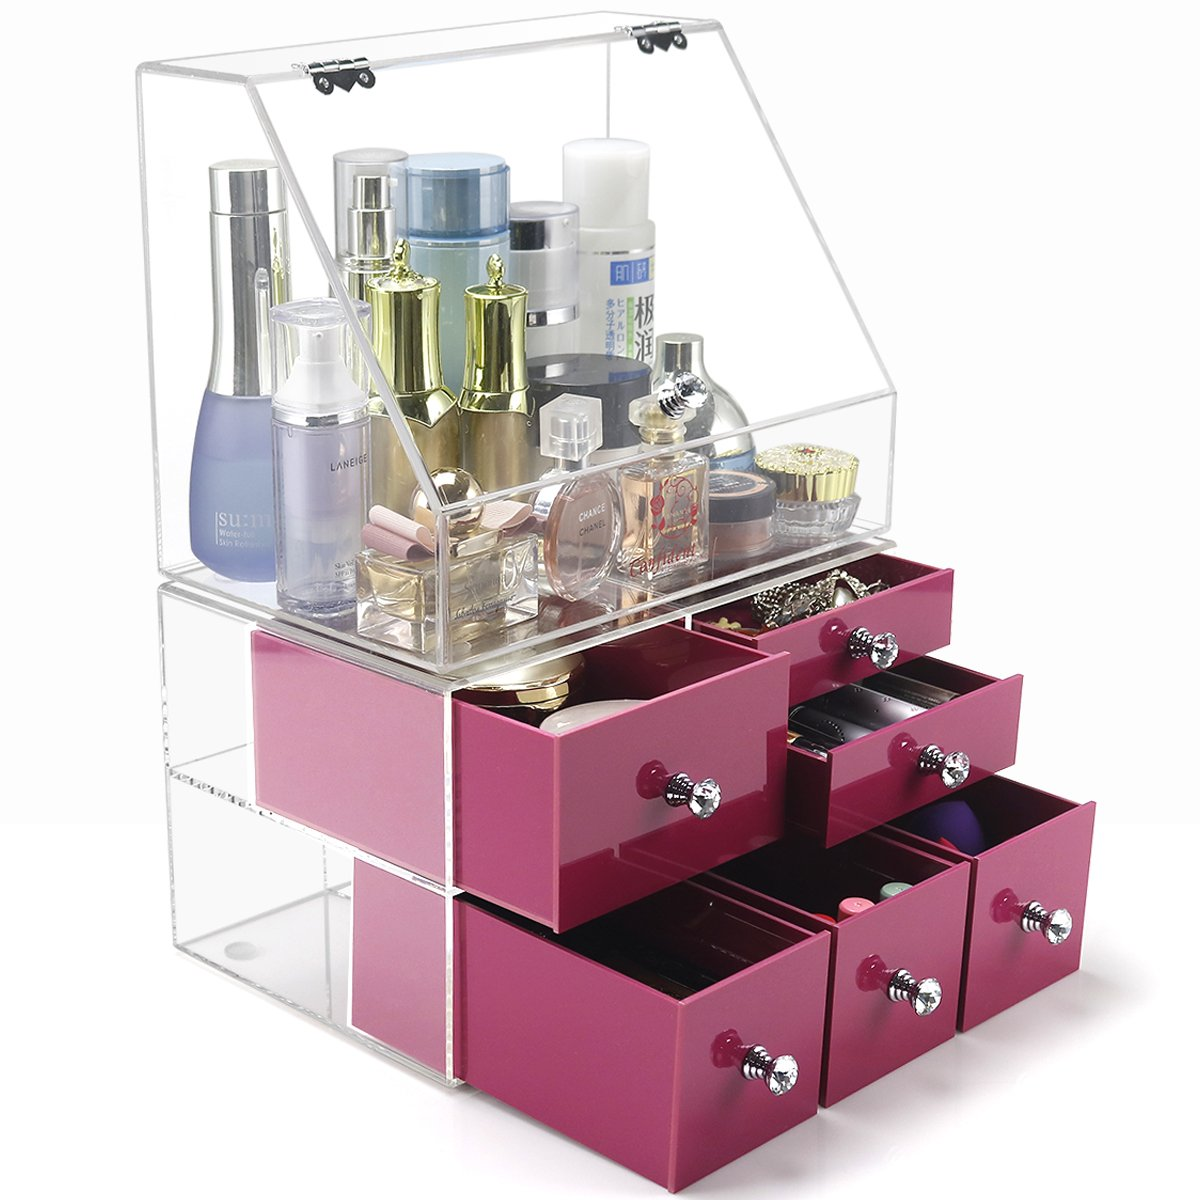 DYCacrlic Acrylic Makeup Organizers,2018 New Design Clear Extra Large Cosmetic Storage,Big Clear Box,6 Pink Deep Drawers,Stackable, Separated Top and Bottom,Decorative Vanity Countertop